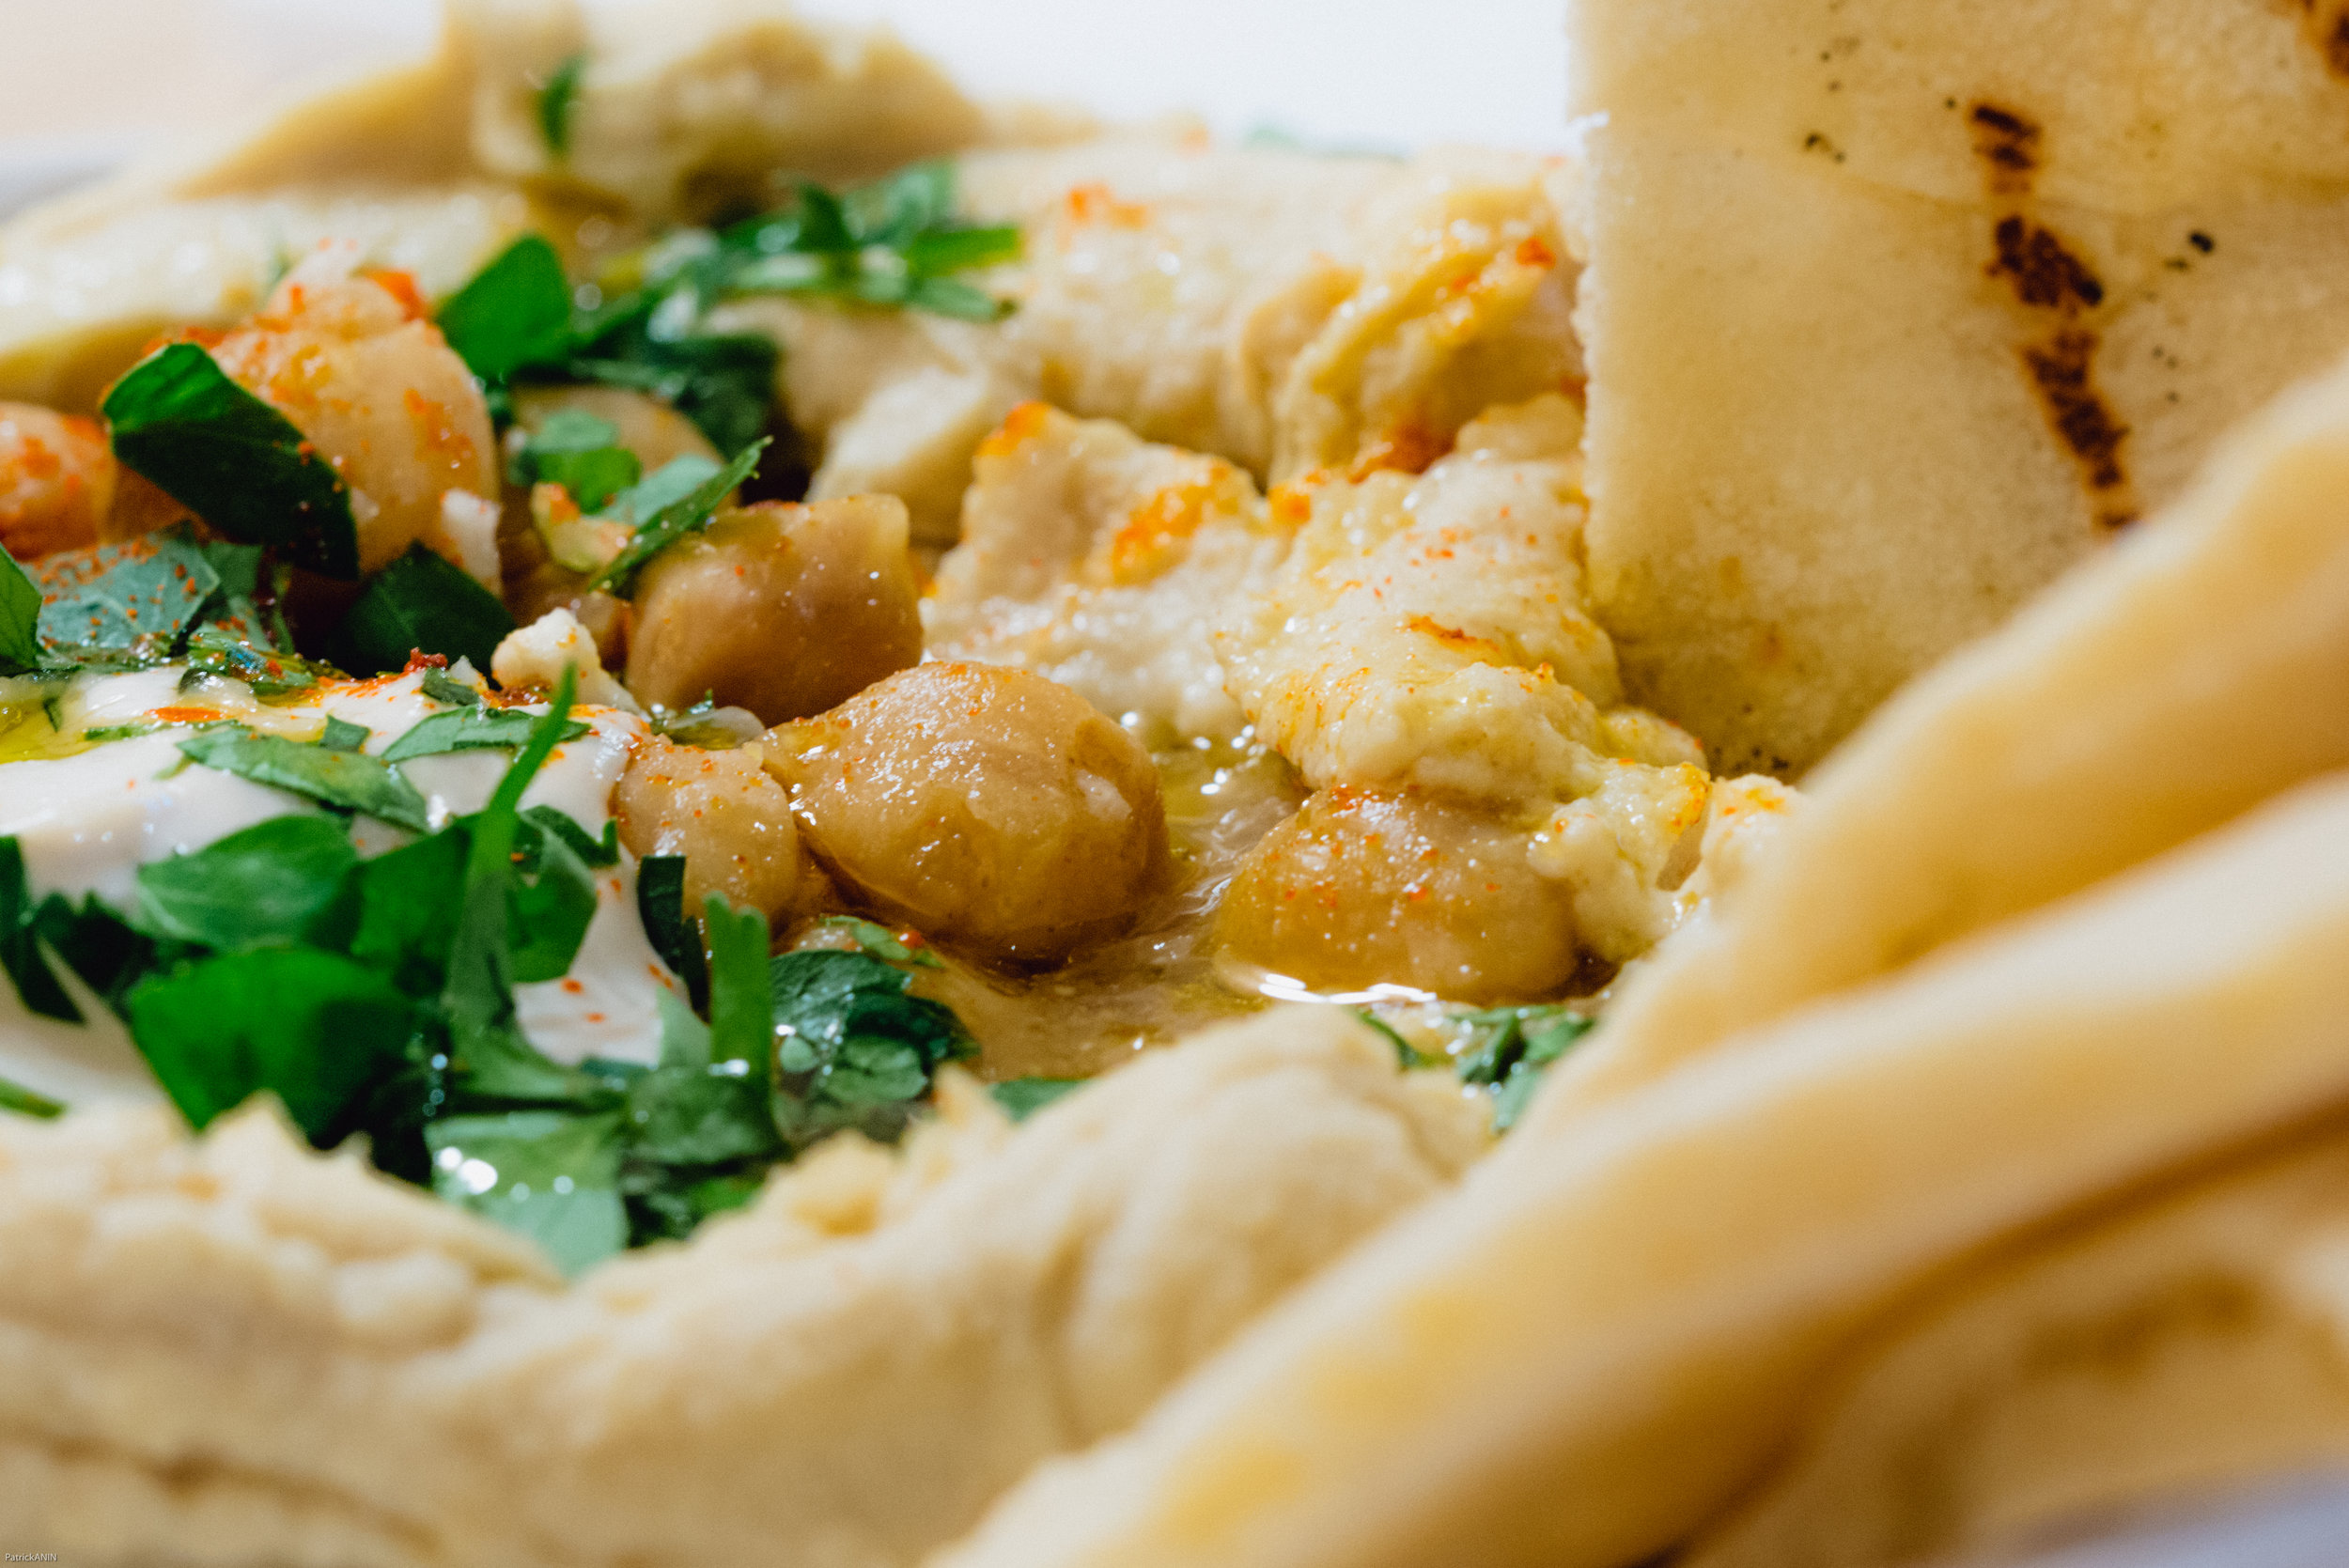 Hummus at Honey & Smoke is served with crispy chickpeas, fresh parsley, olive oil and green chili tatbila